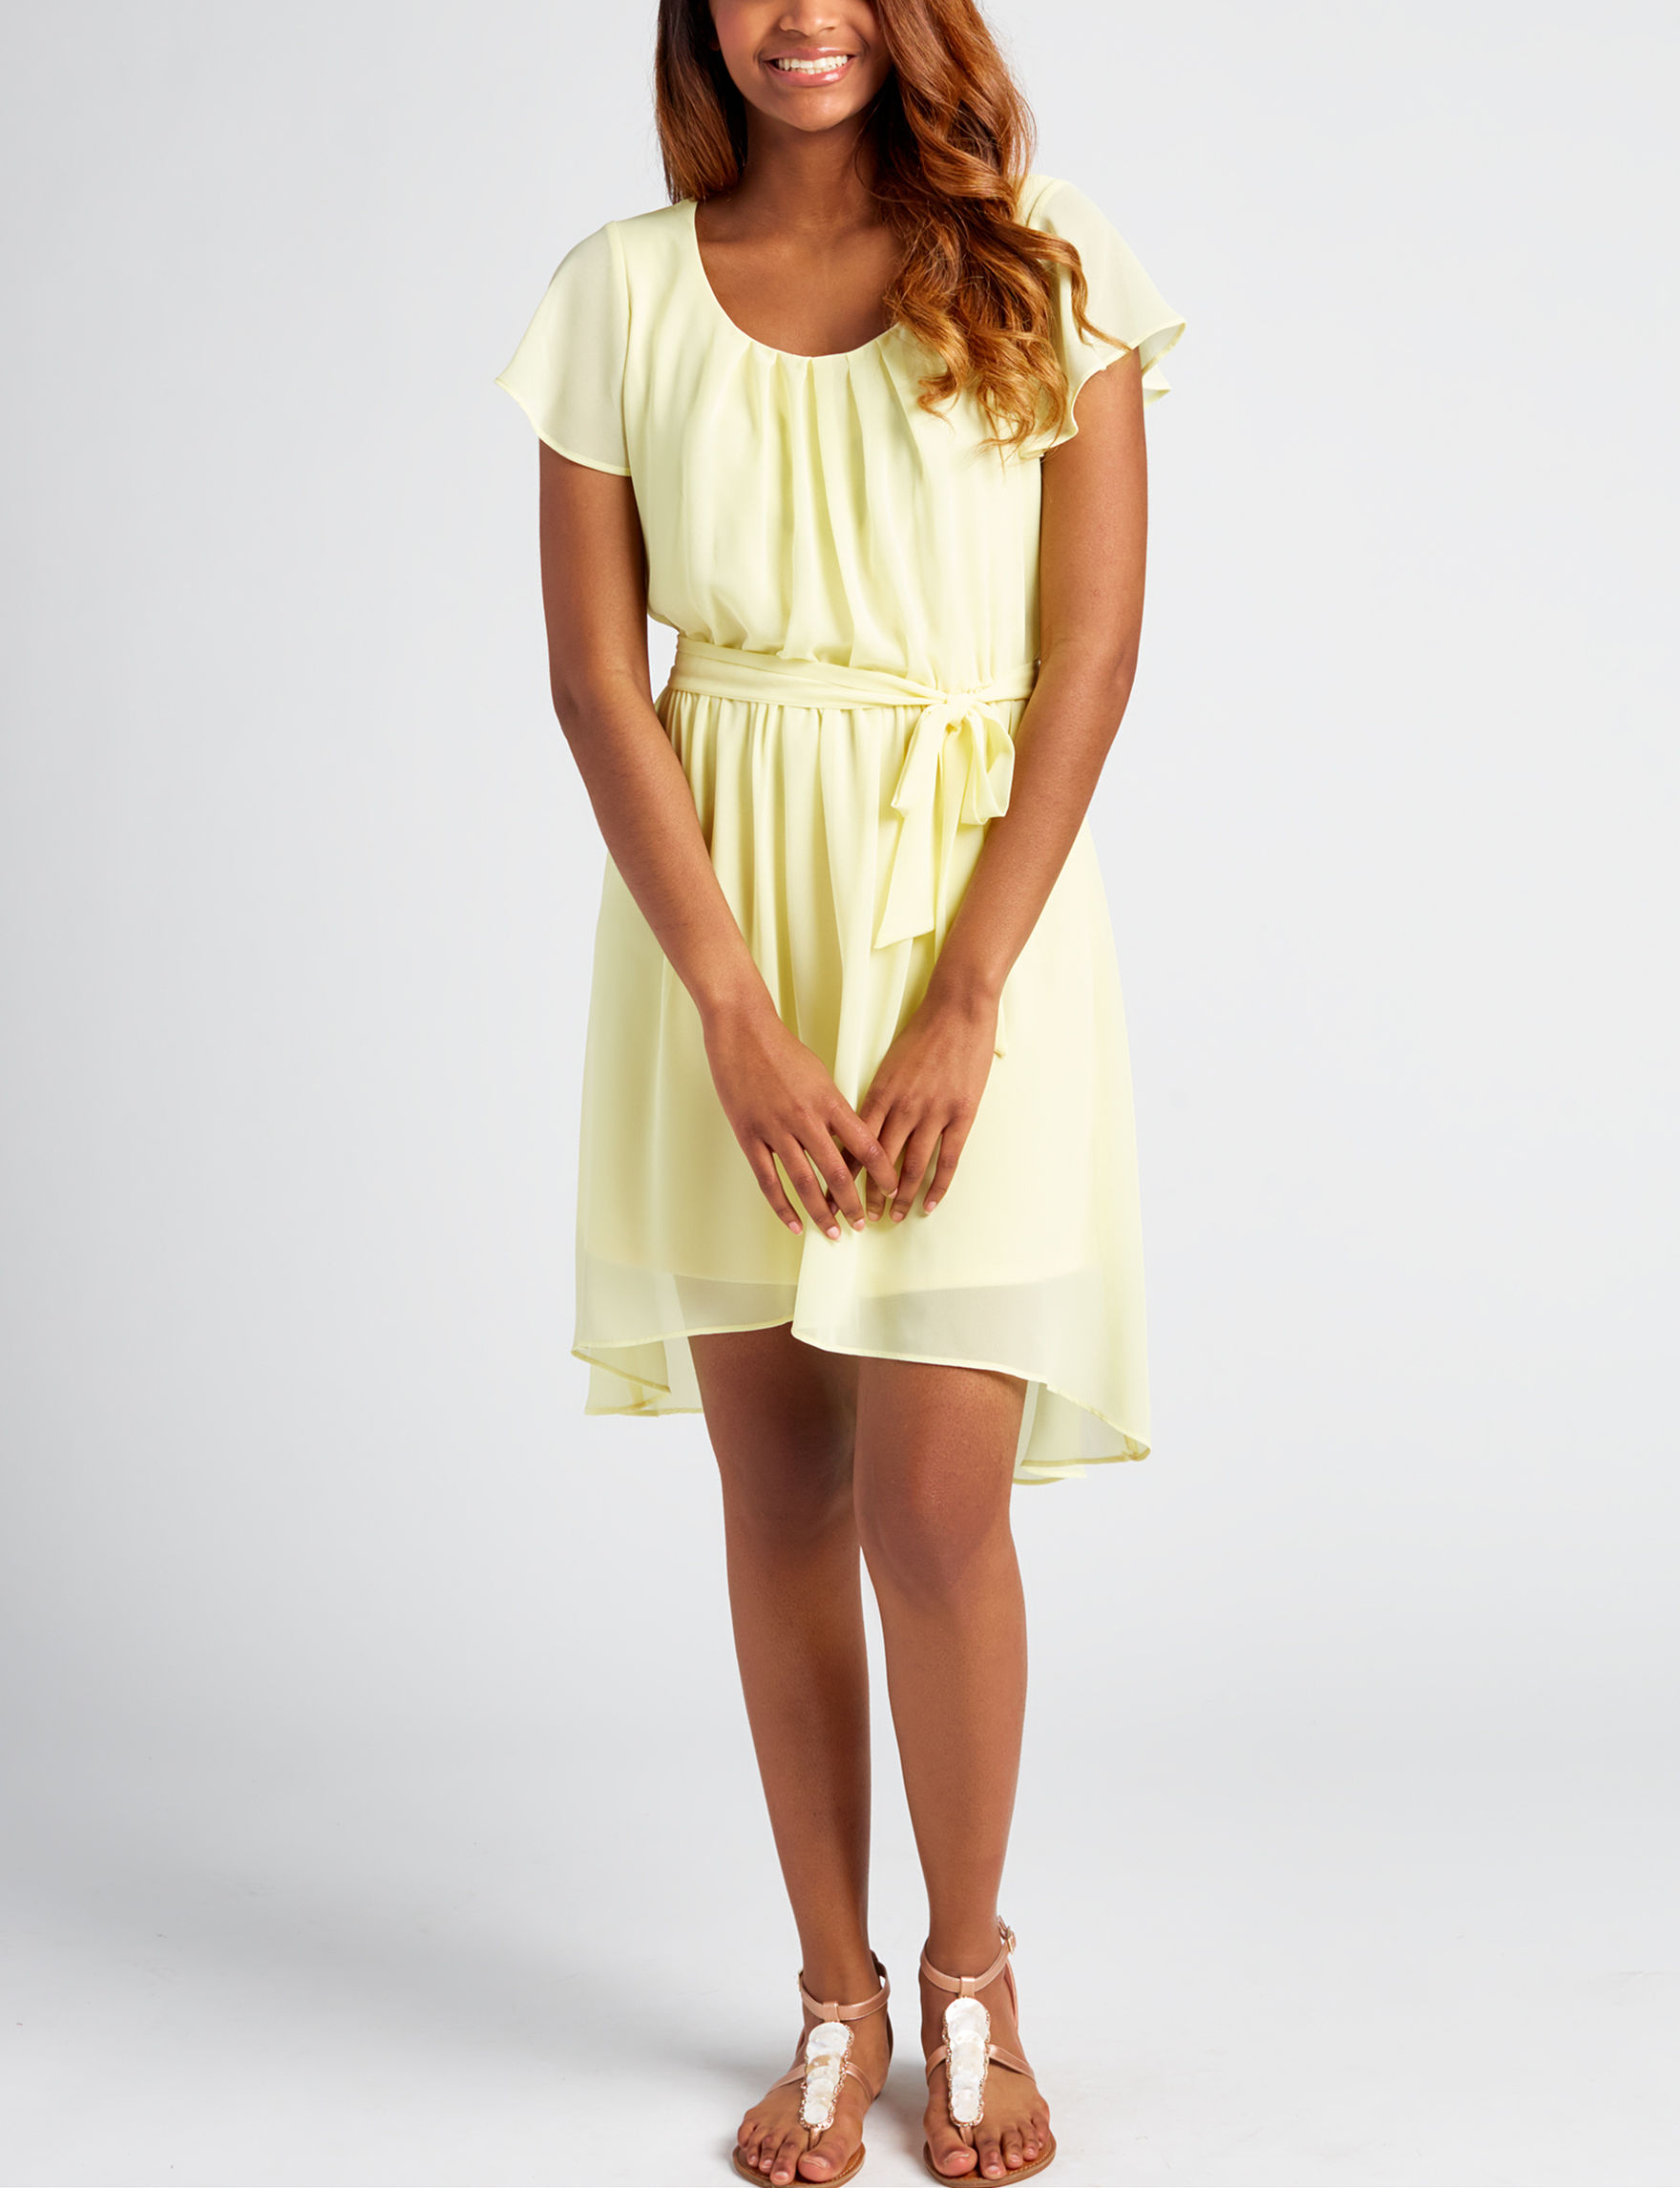 A. Byer Light Yellow Everyday & Casual Shift Dresses